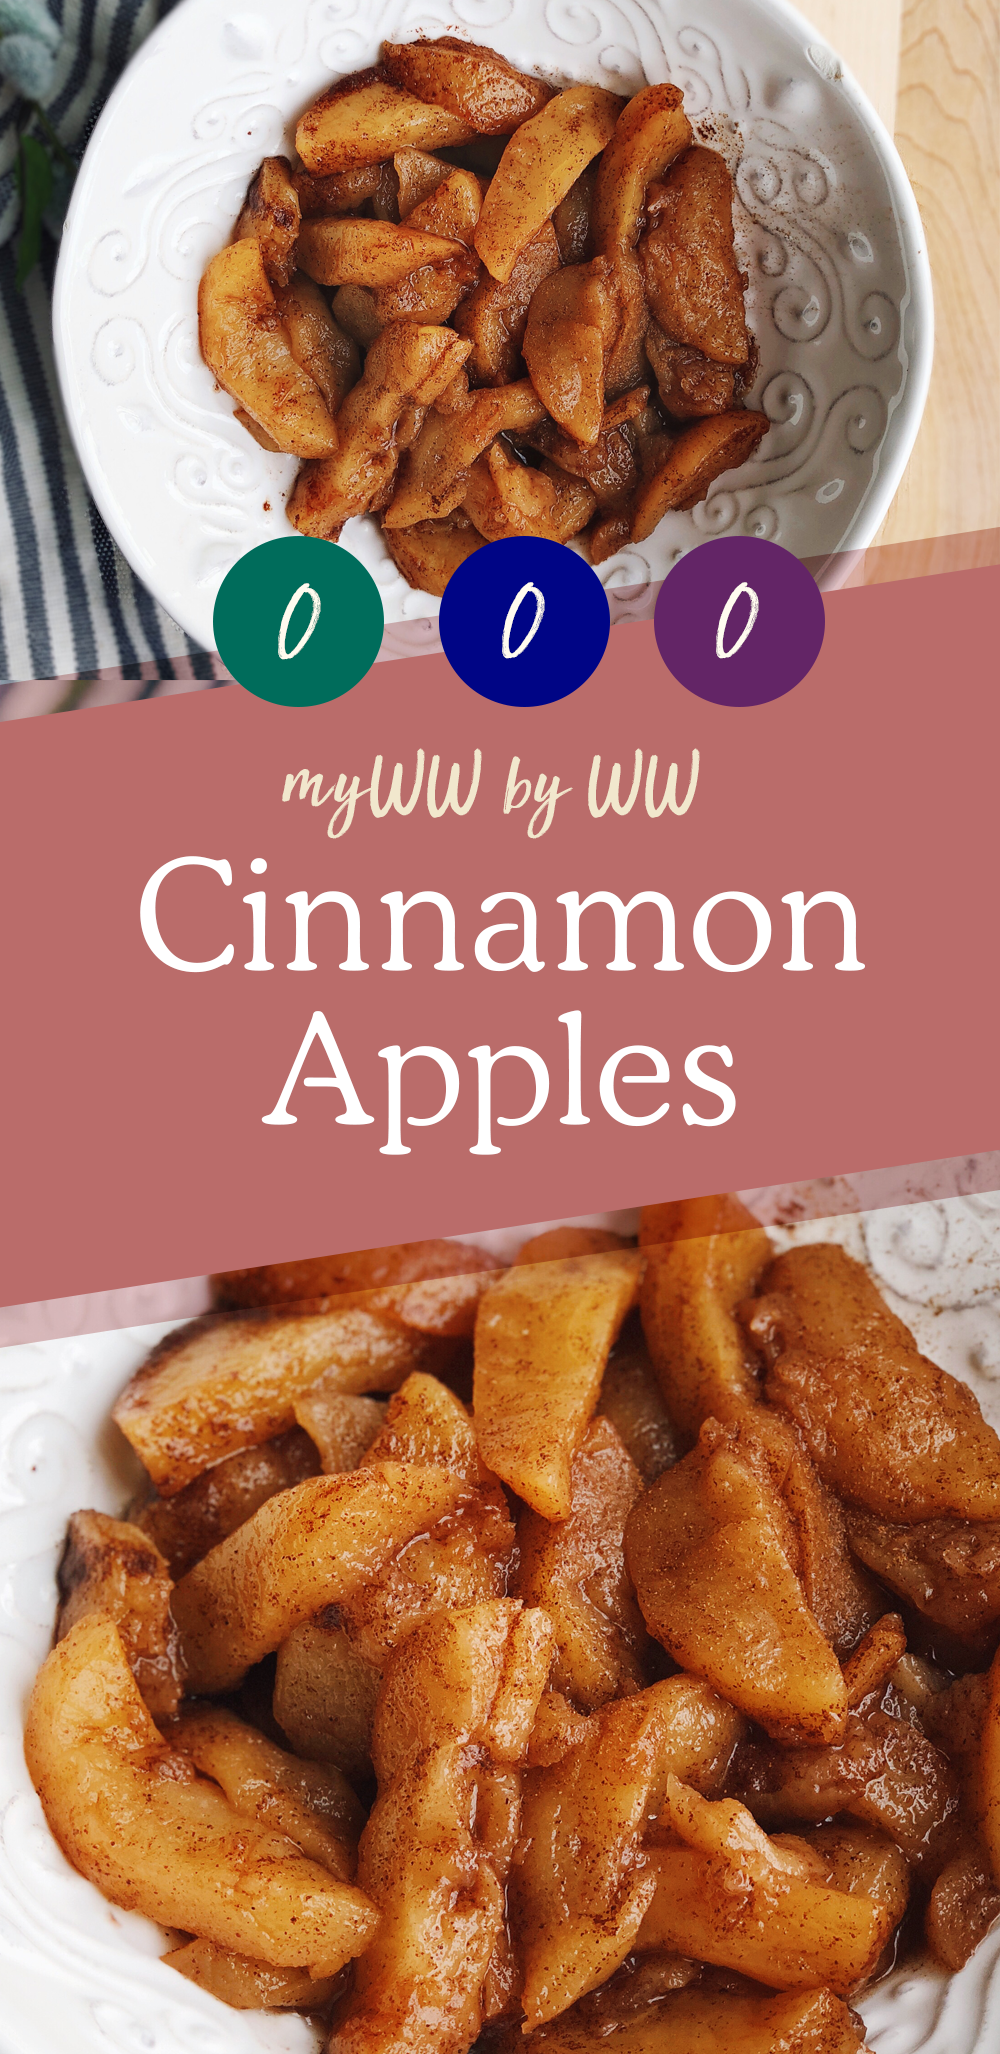 Weight Watchers Cinnamon Apples | ZERO Smartpoints - Lose it Lyss